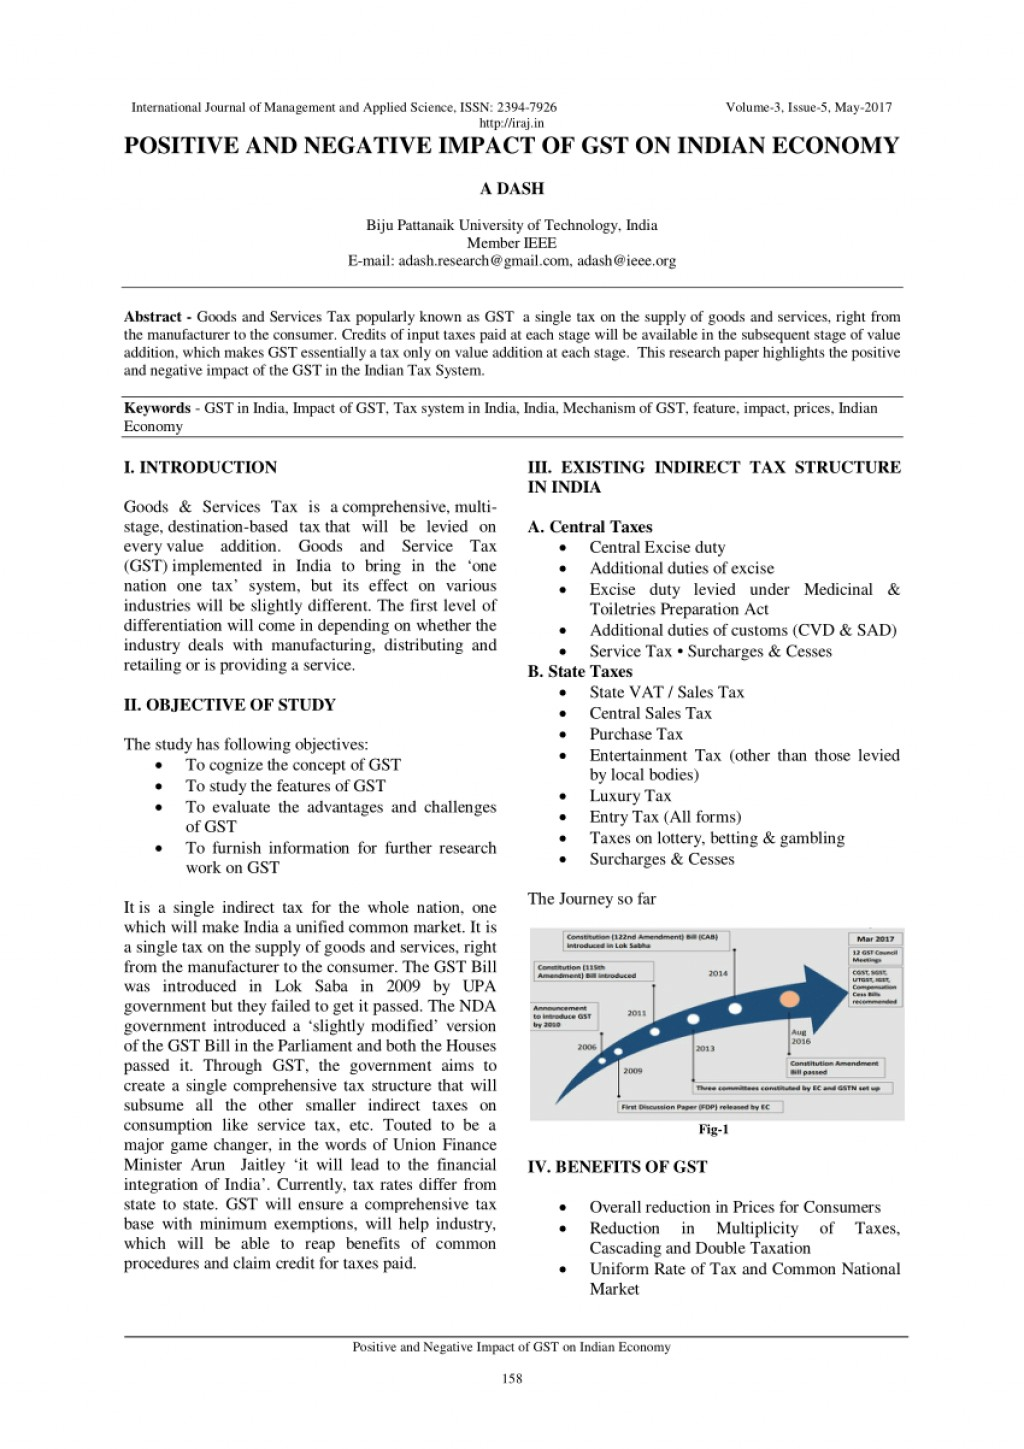 003 Research Paper Largepreview Remarkable Economy Political Topics Cash To Cashless Gig Large